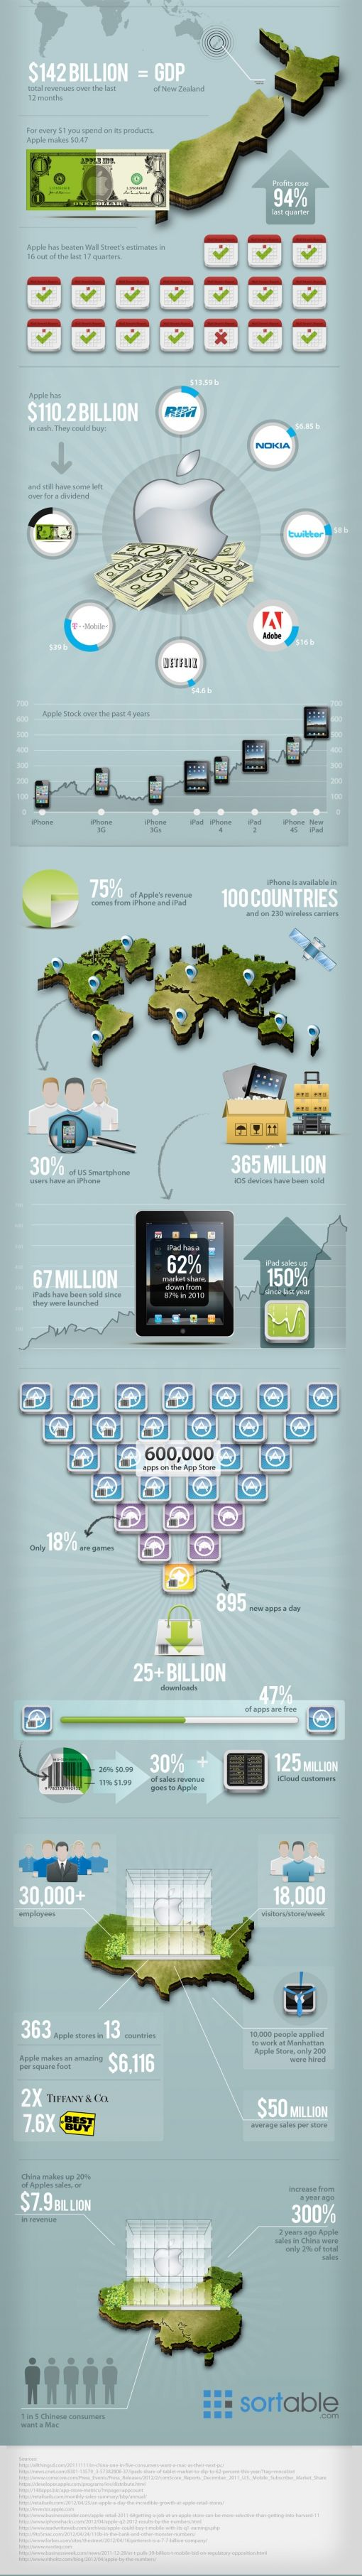 apple-by-the-numbers